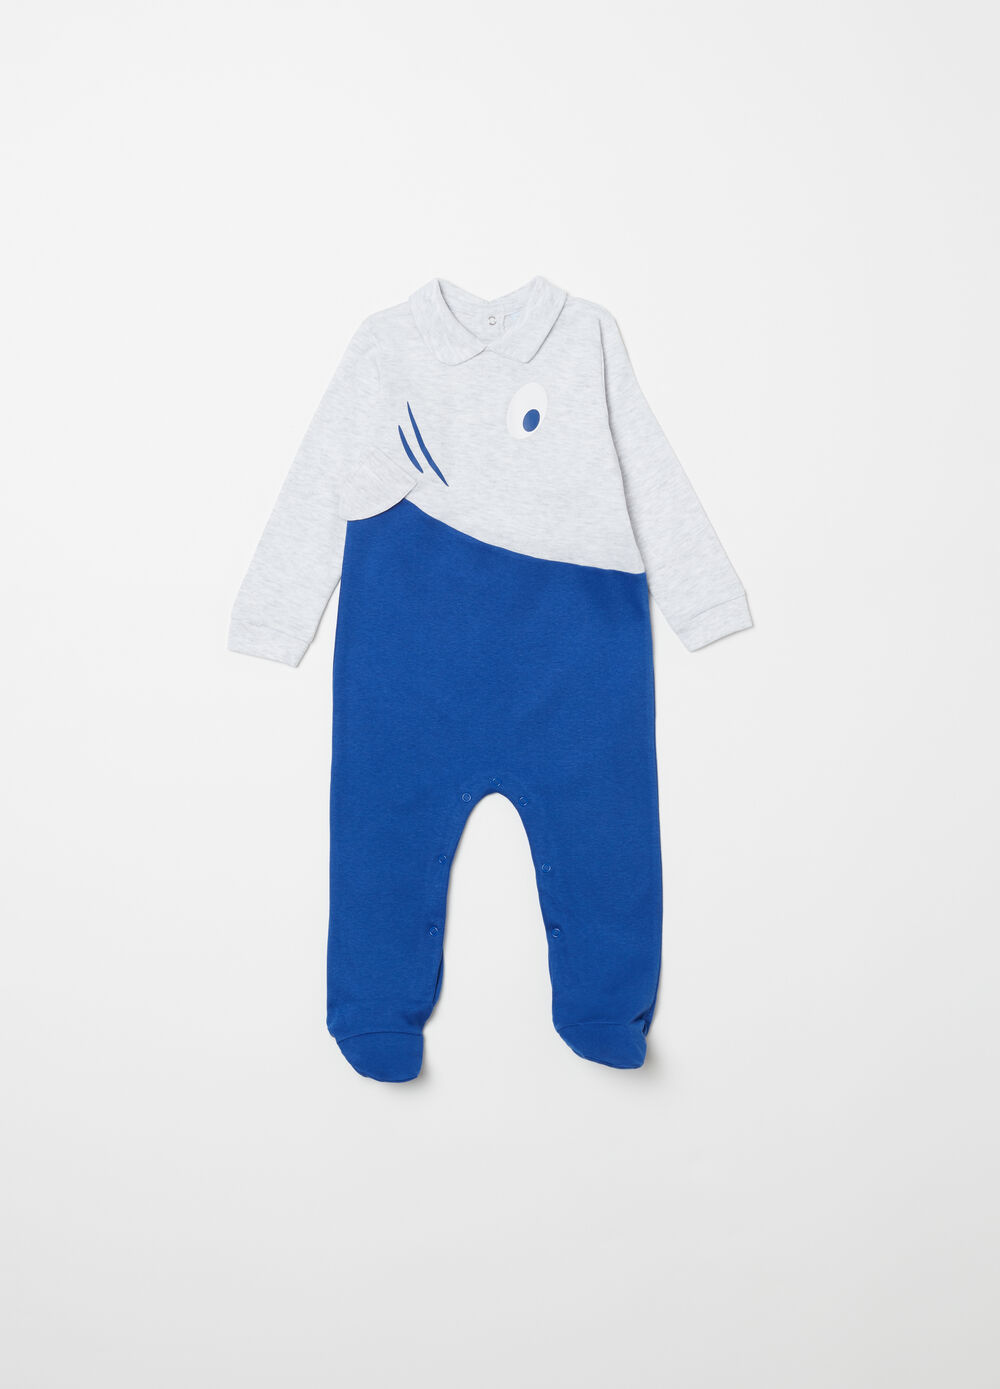 Shark motif patterned sleepsuit